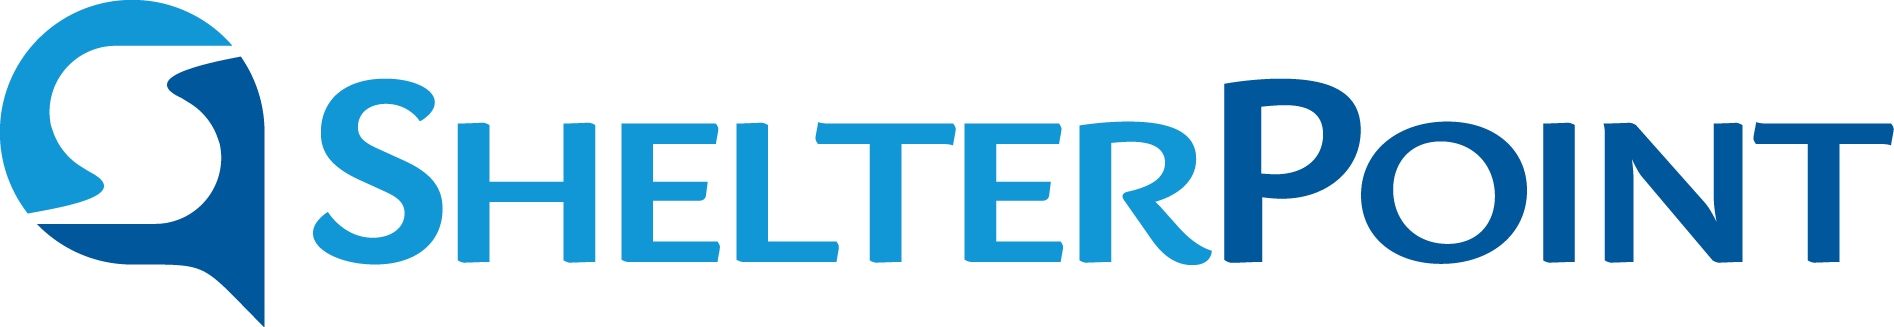 ShelterPoint Logo - Master.png